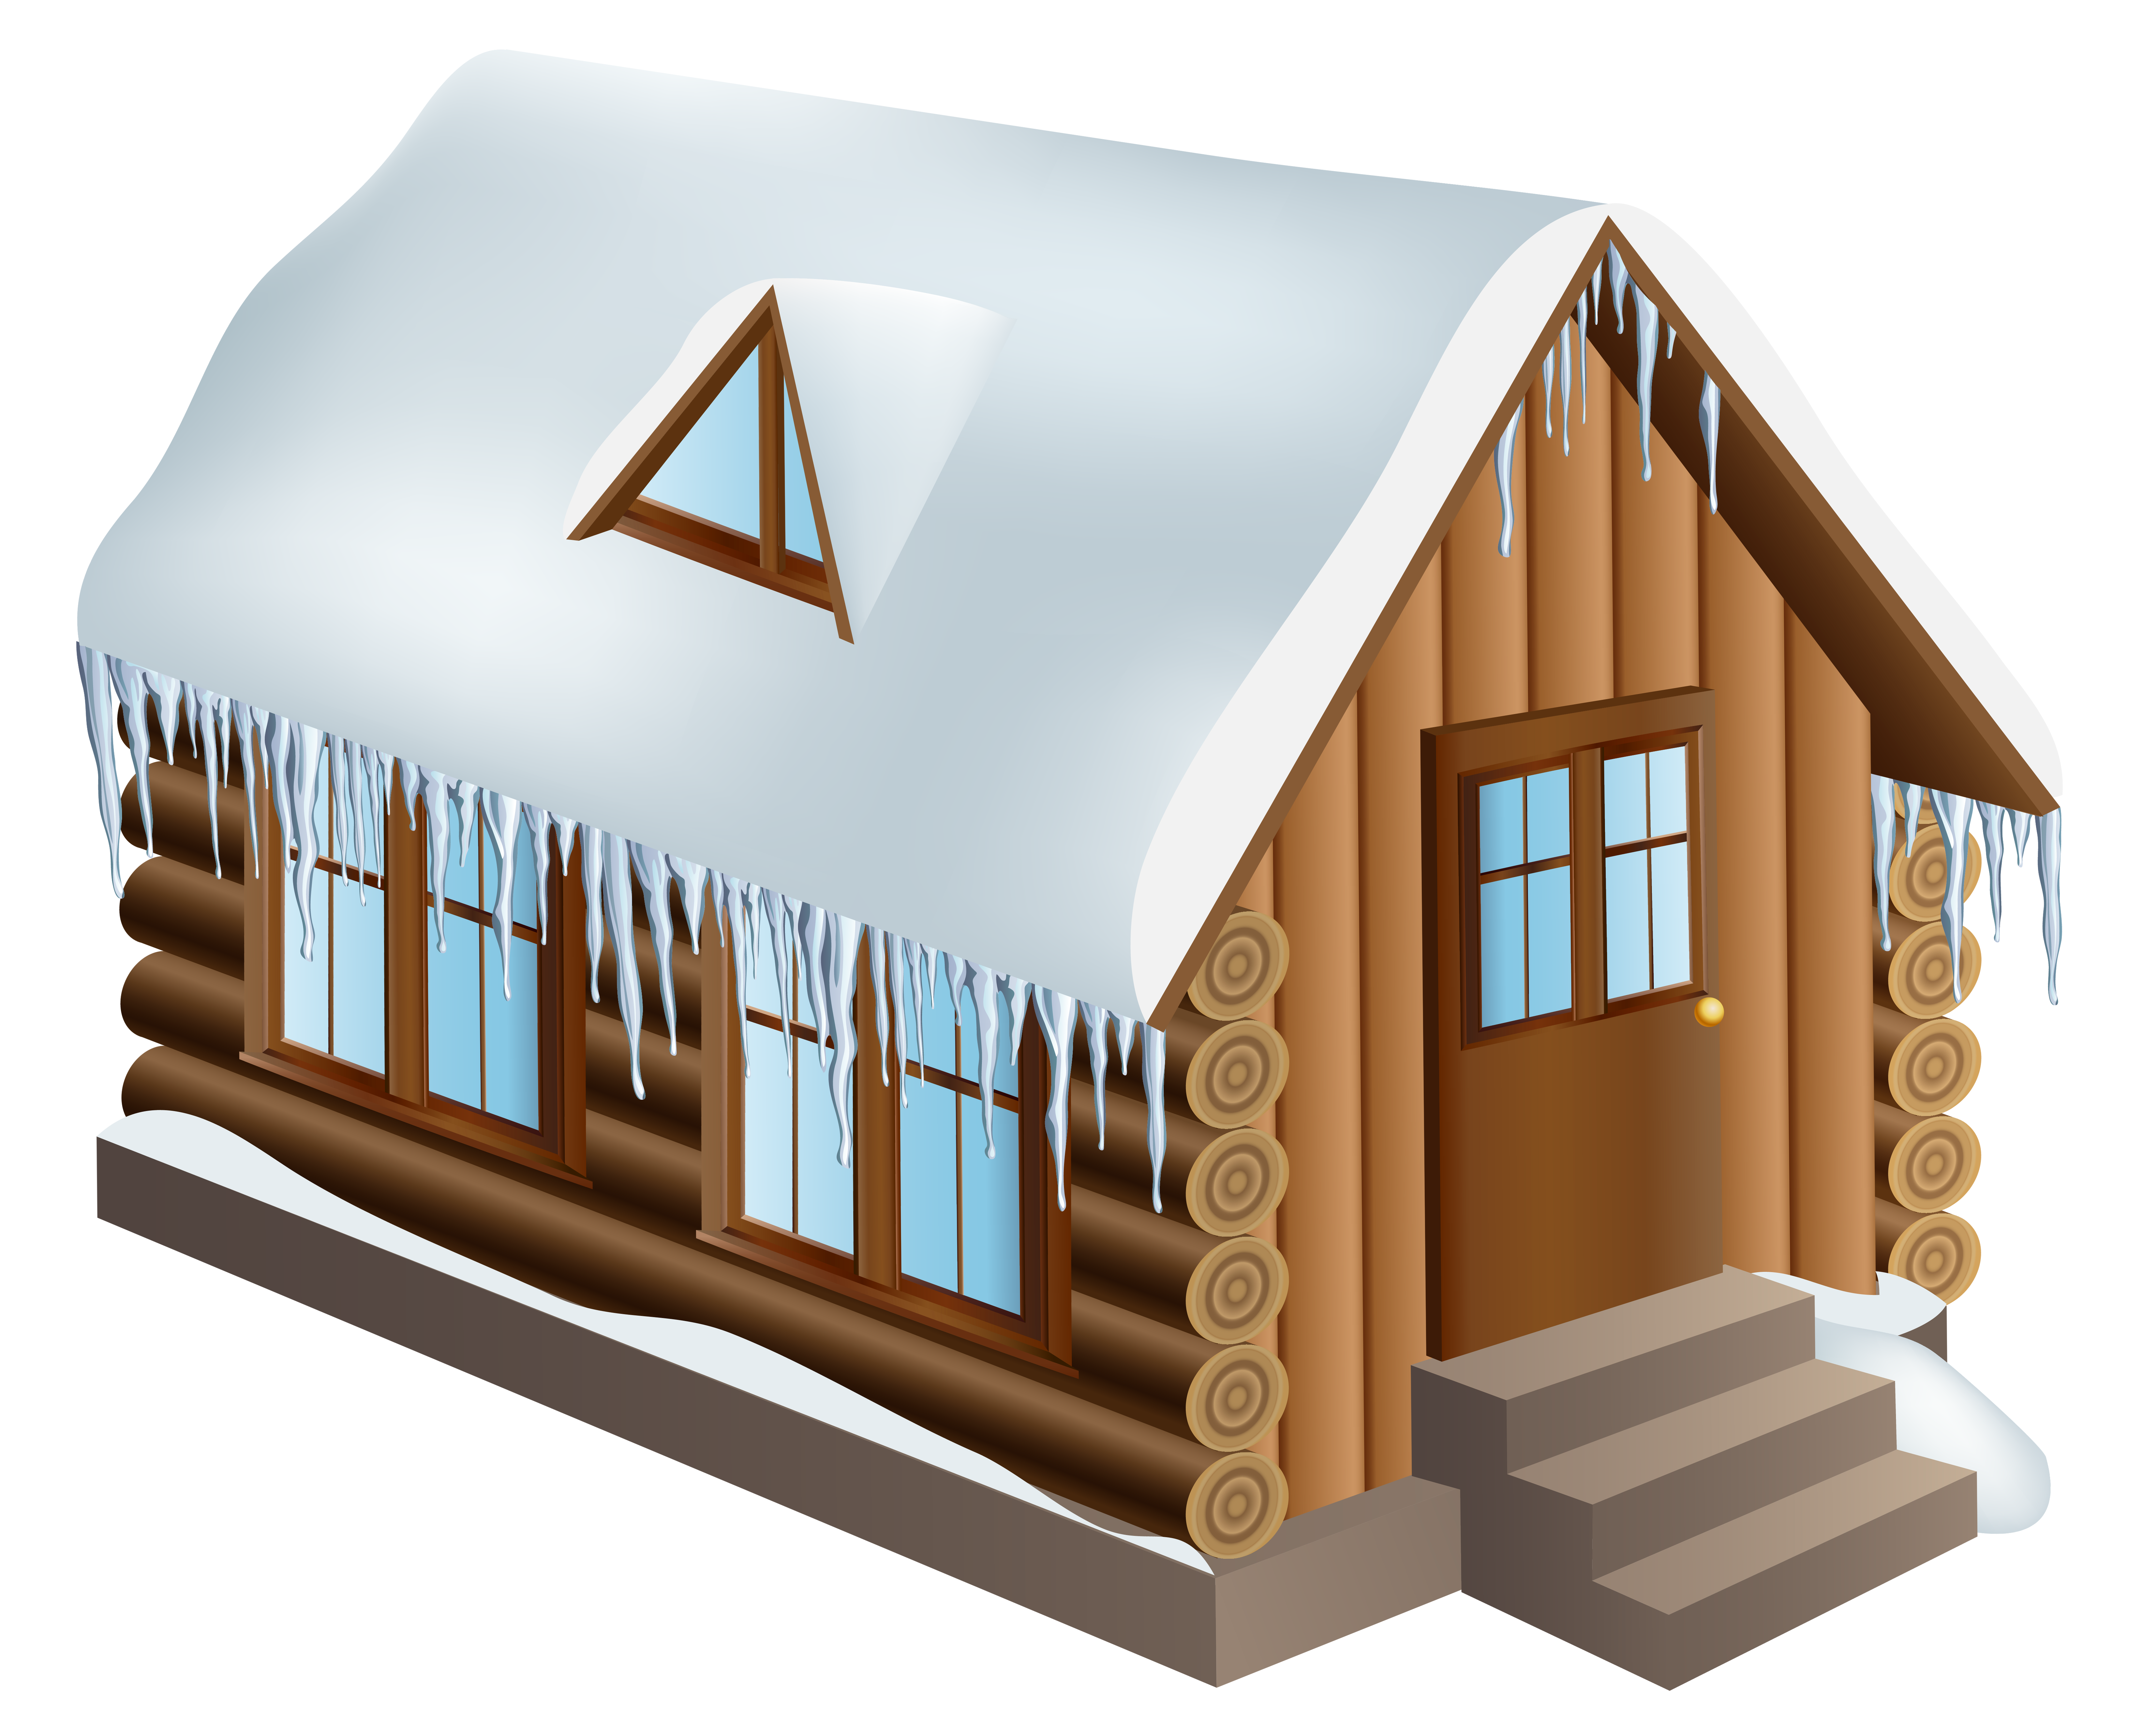 Cabin house png clip. Piano clipart winter